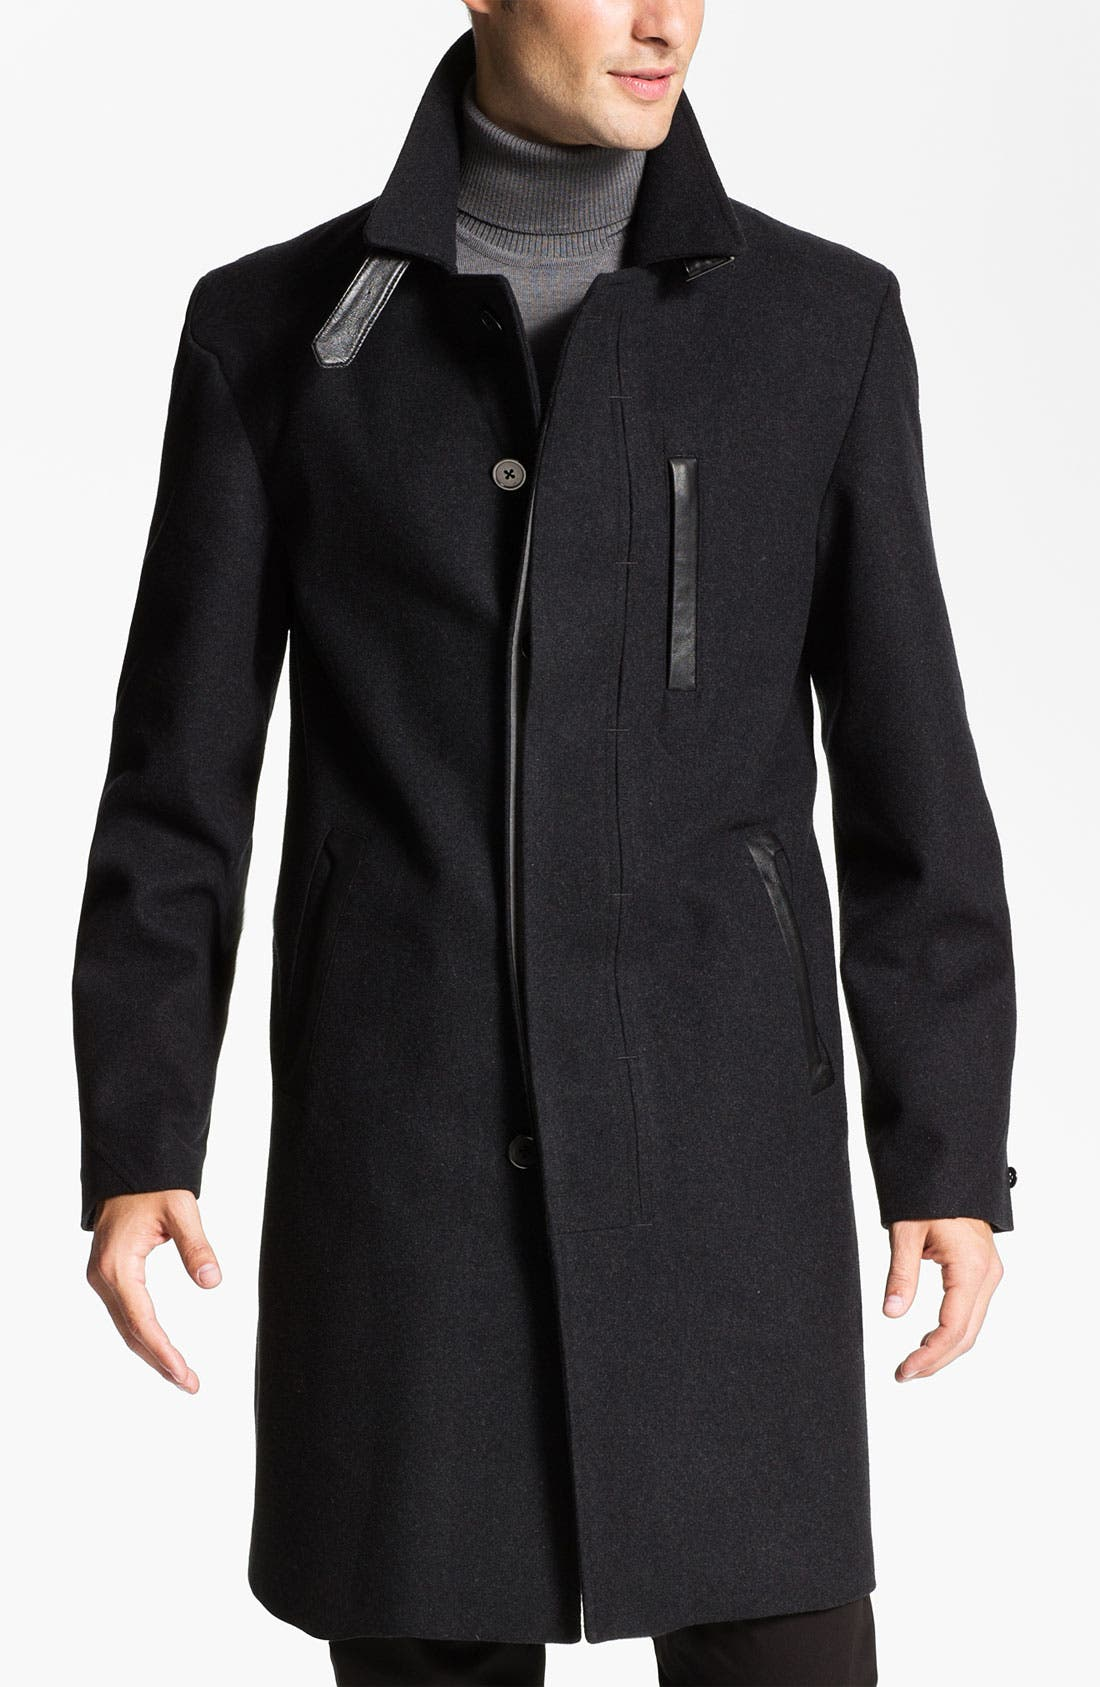 Alternate Image 1 Selected - W.R.K 'Towne' Single Breasted Wool Blend Coat